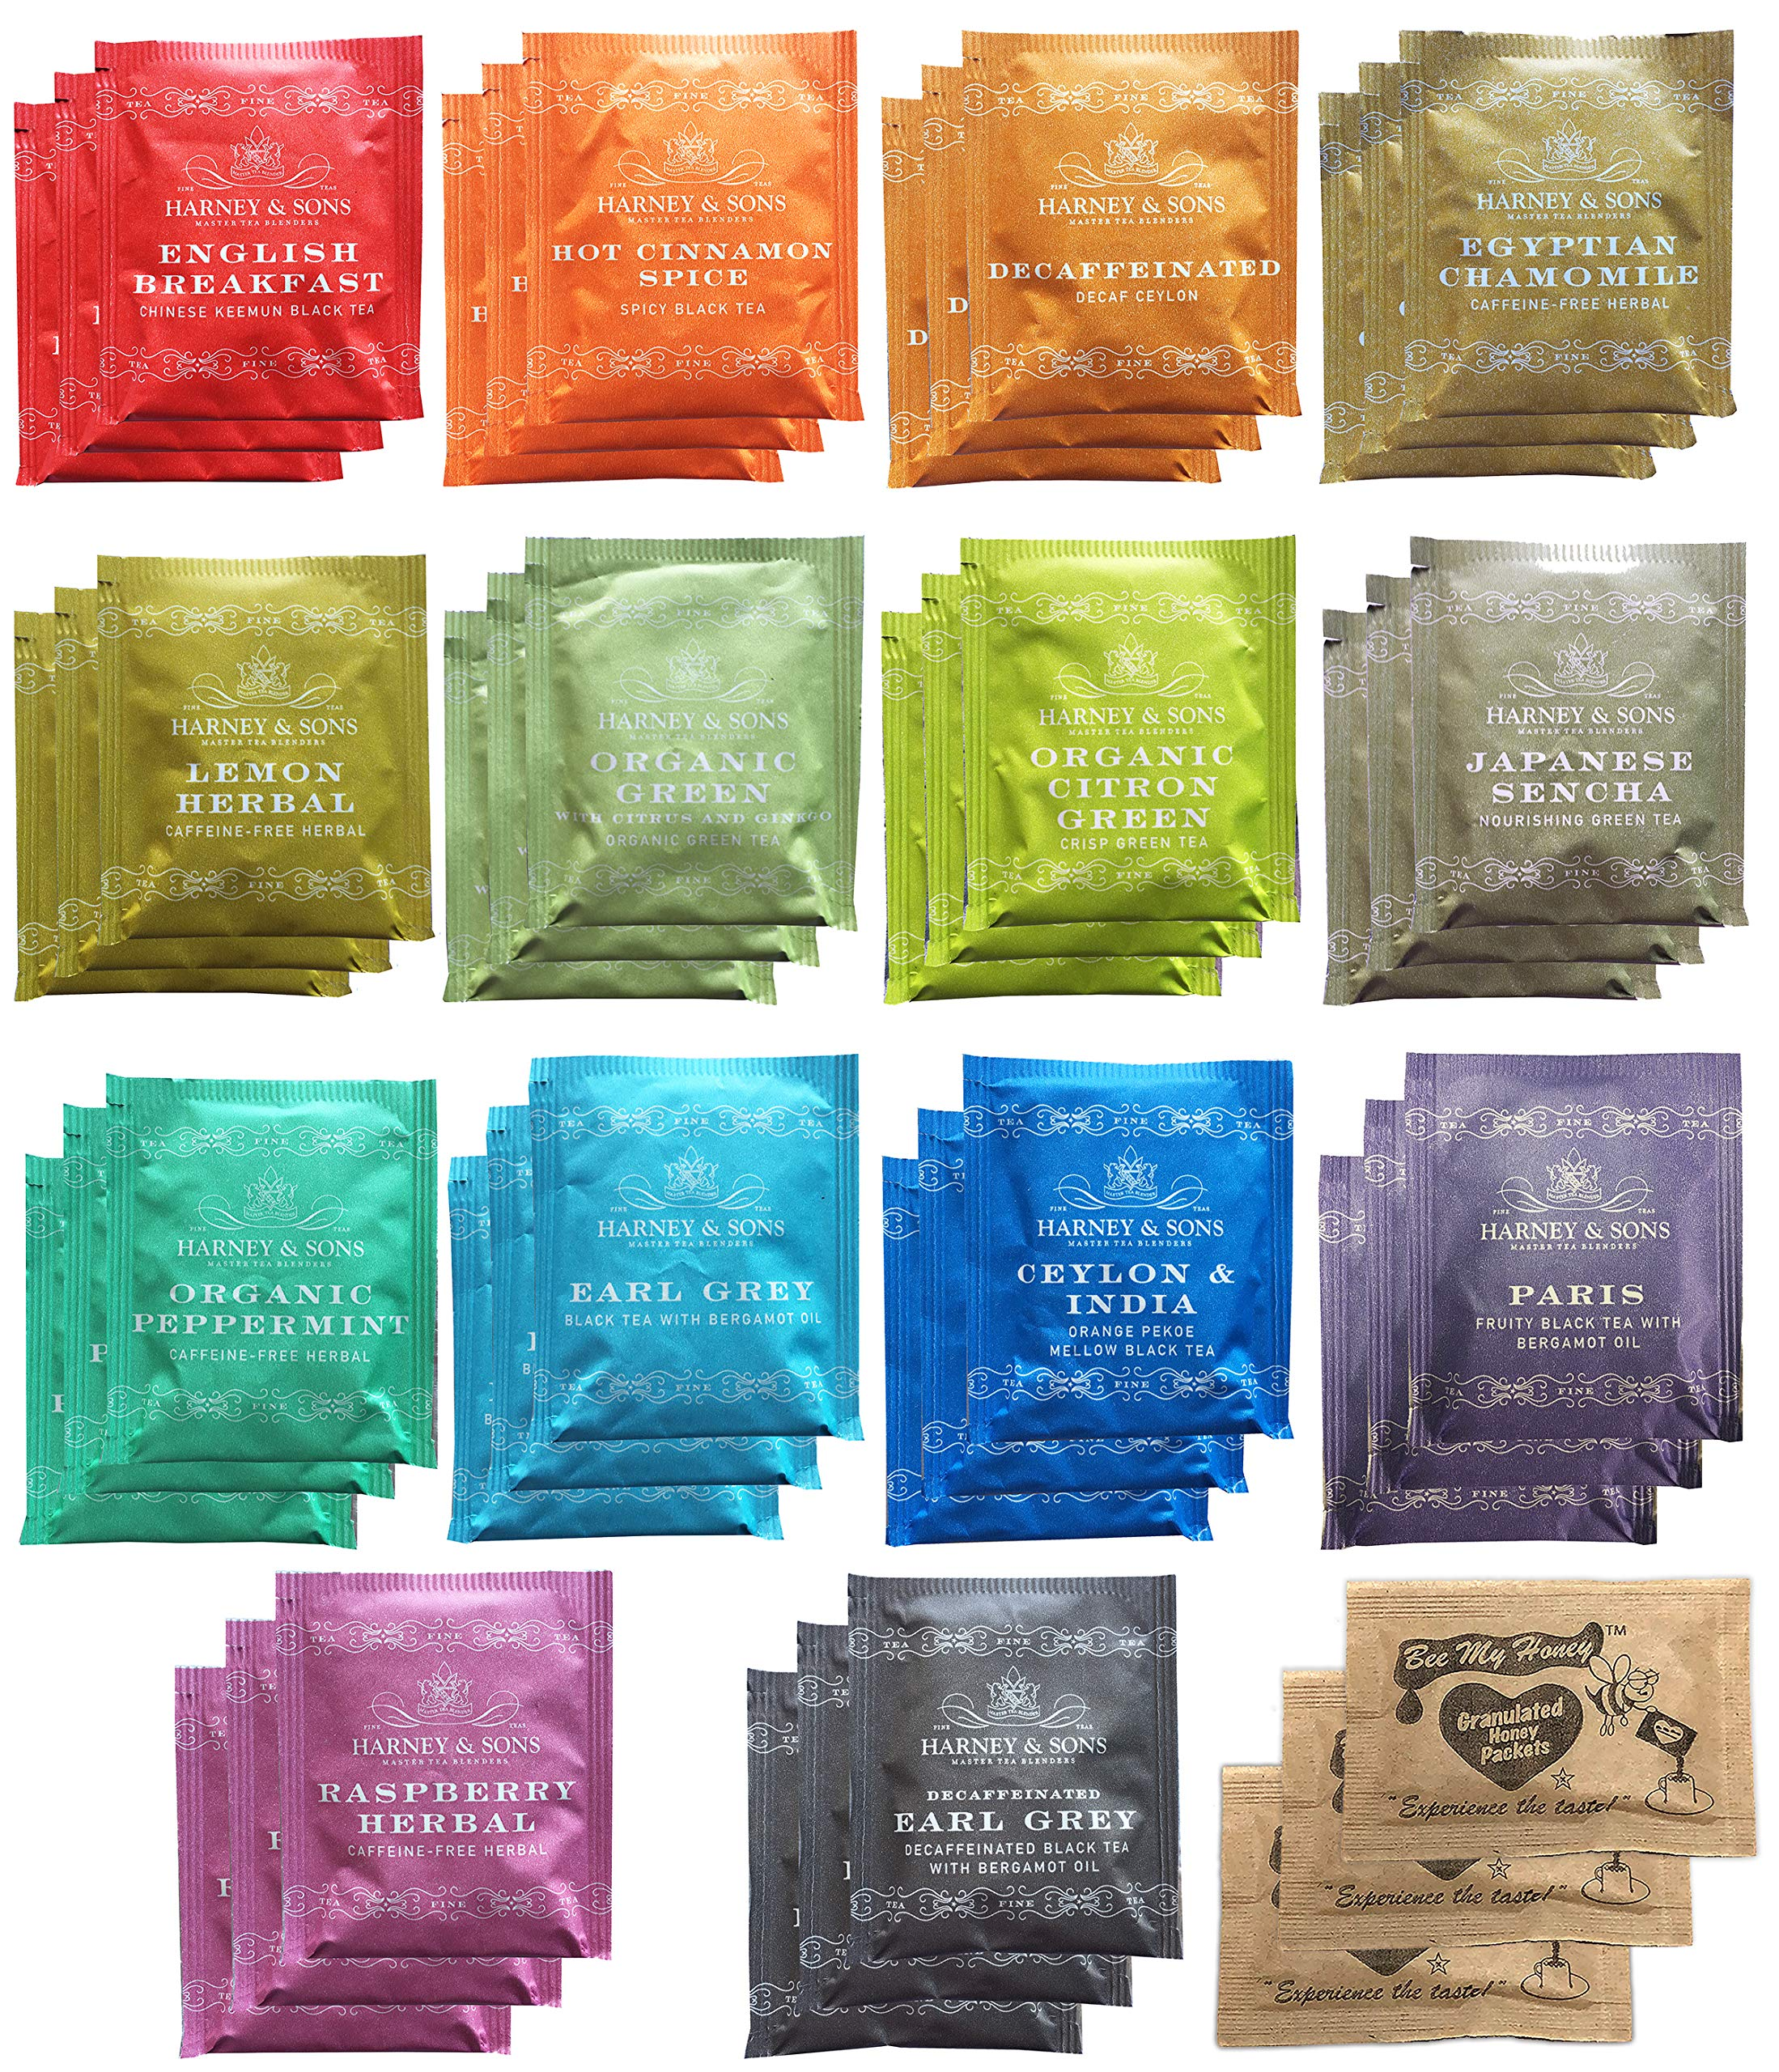 Harney & Sons Assorted Tea Bag Sampler 42 Count With Honey Crystal Packs Great for Birthday, Hostess and Co-worker Gifts by Harney & Sons